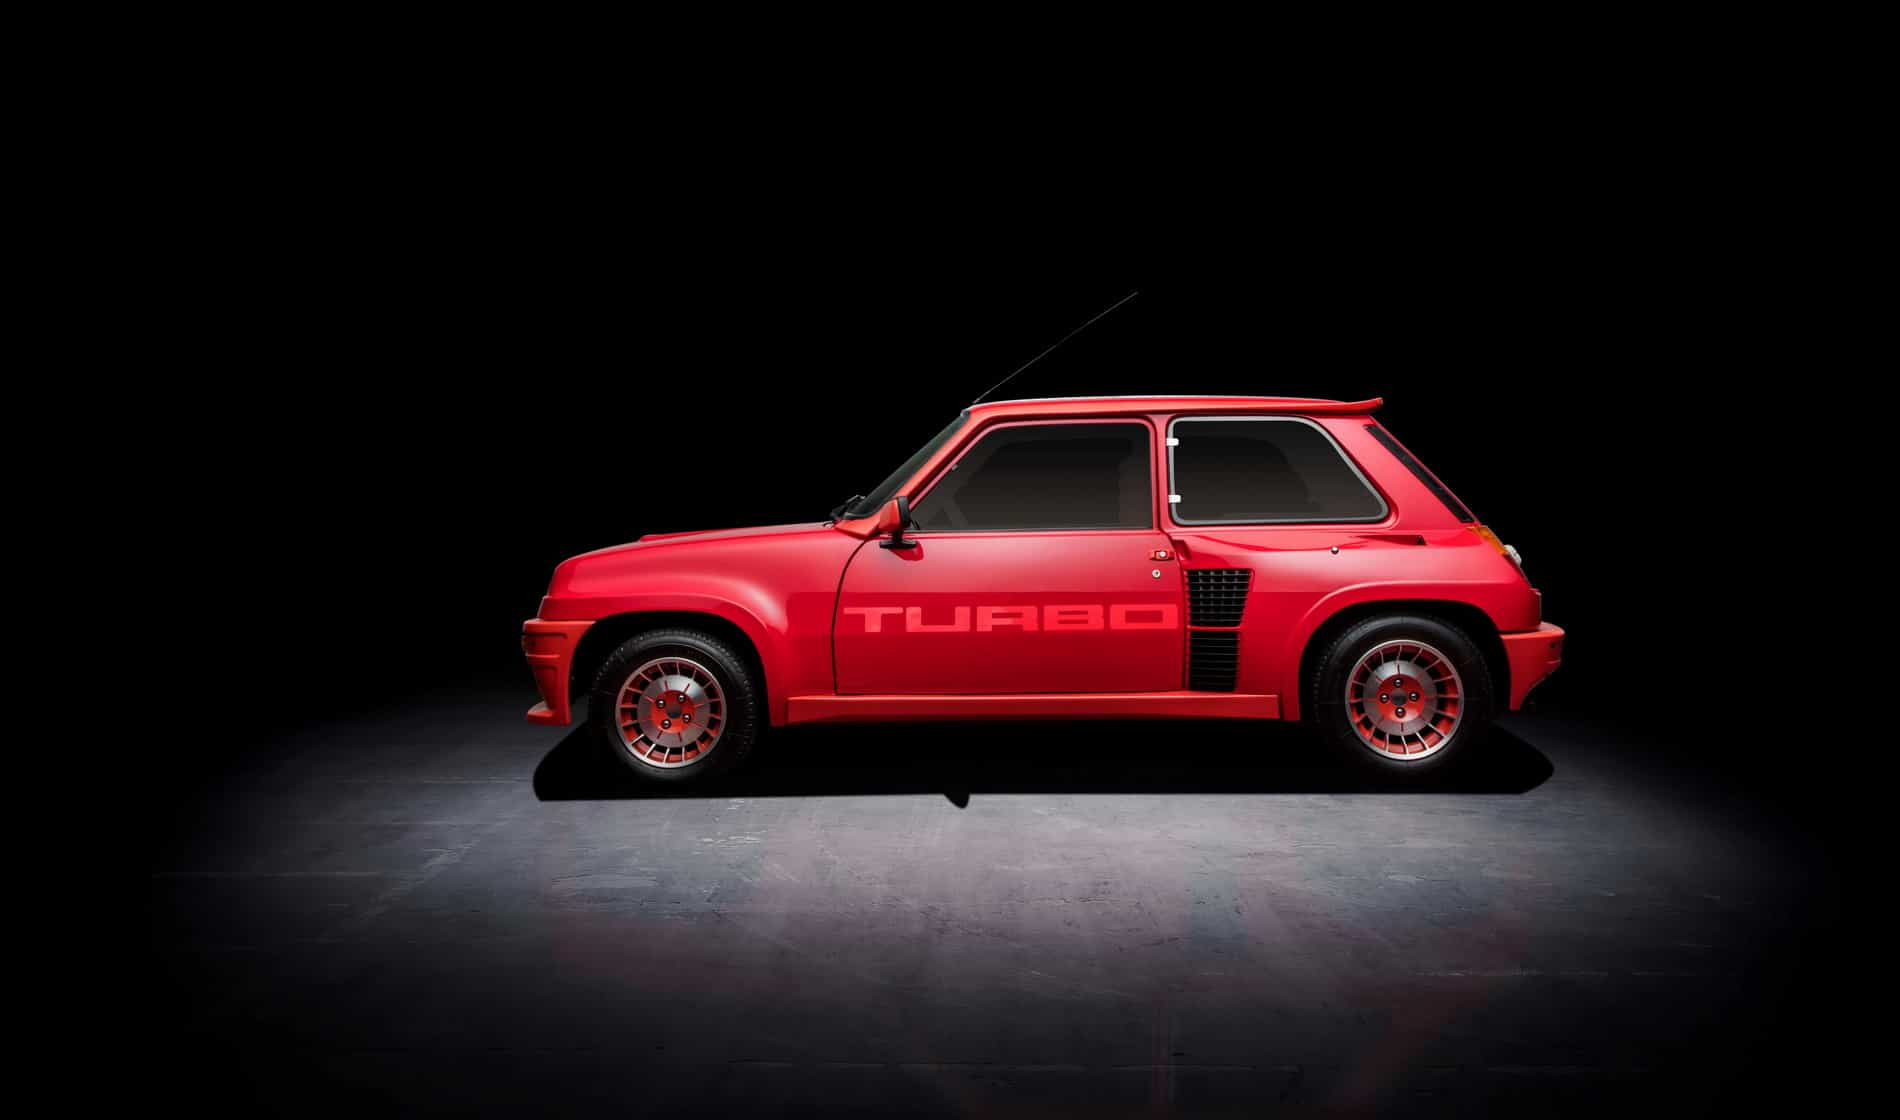 1981 – Renault 5 Turbo